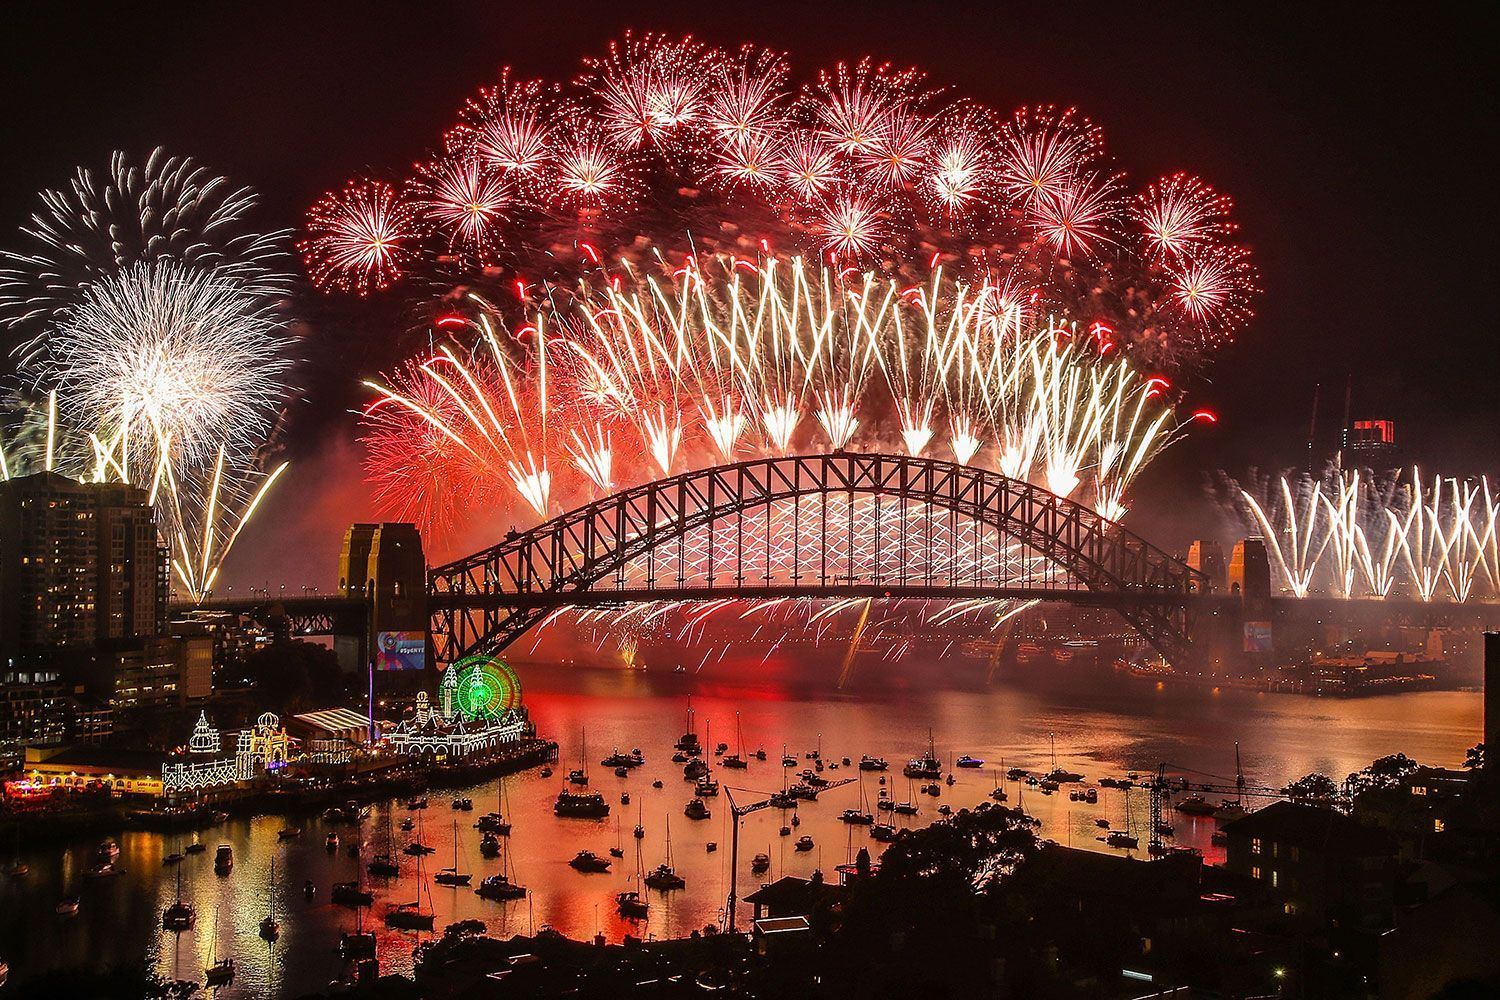 Sydney New Years Eve Fireworks Google Search In 2020 Sydney New Years Eve New Years Eve Fireworks New Years Eve Live